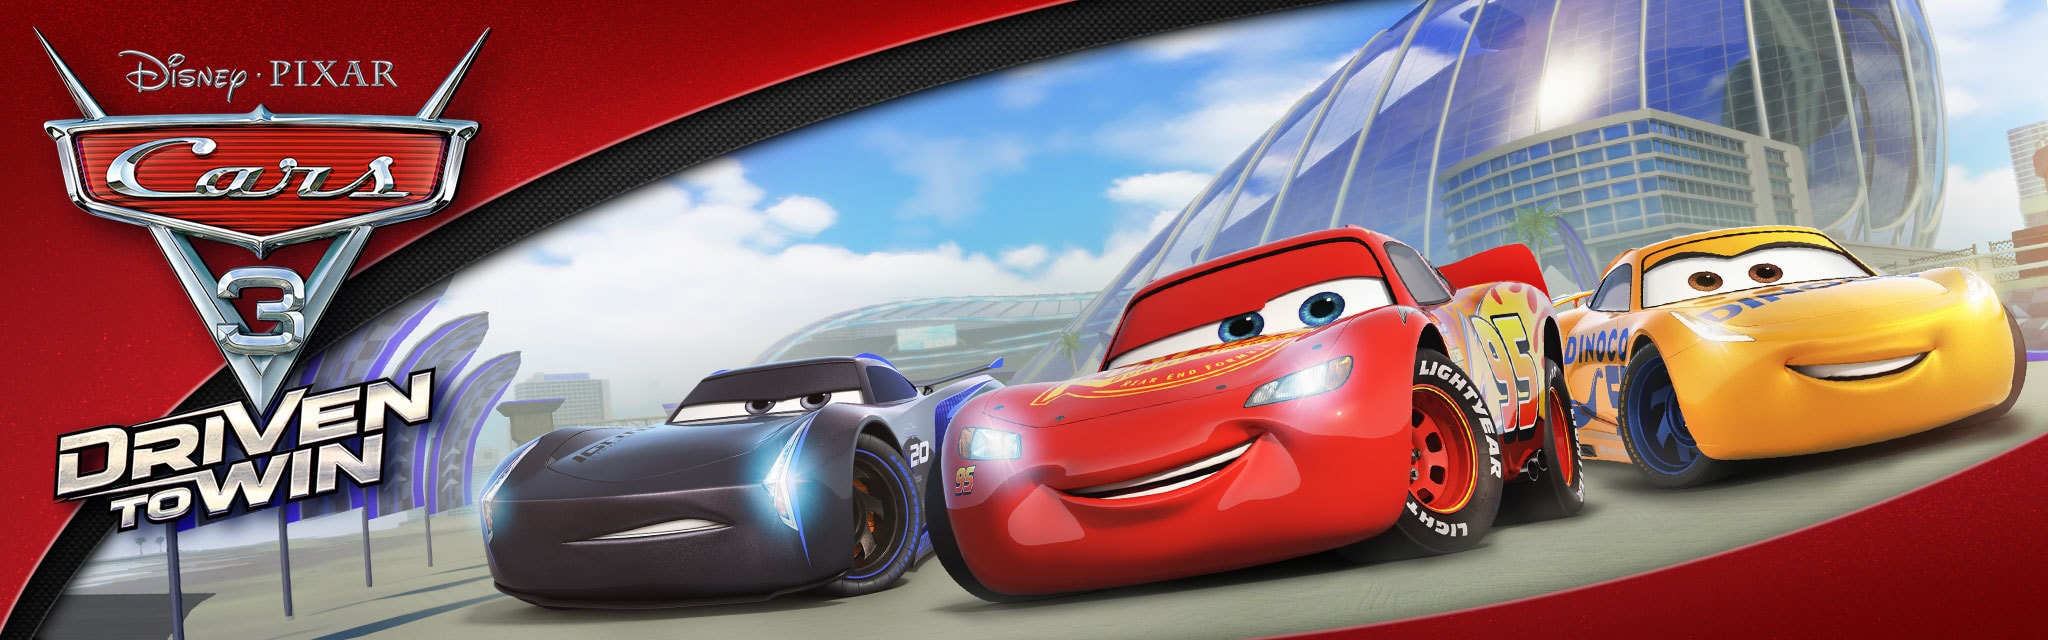 Cars 3: Driven to Win | Disney LOL